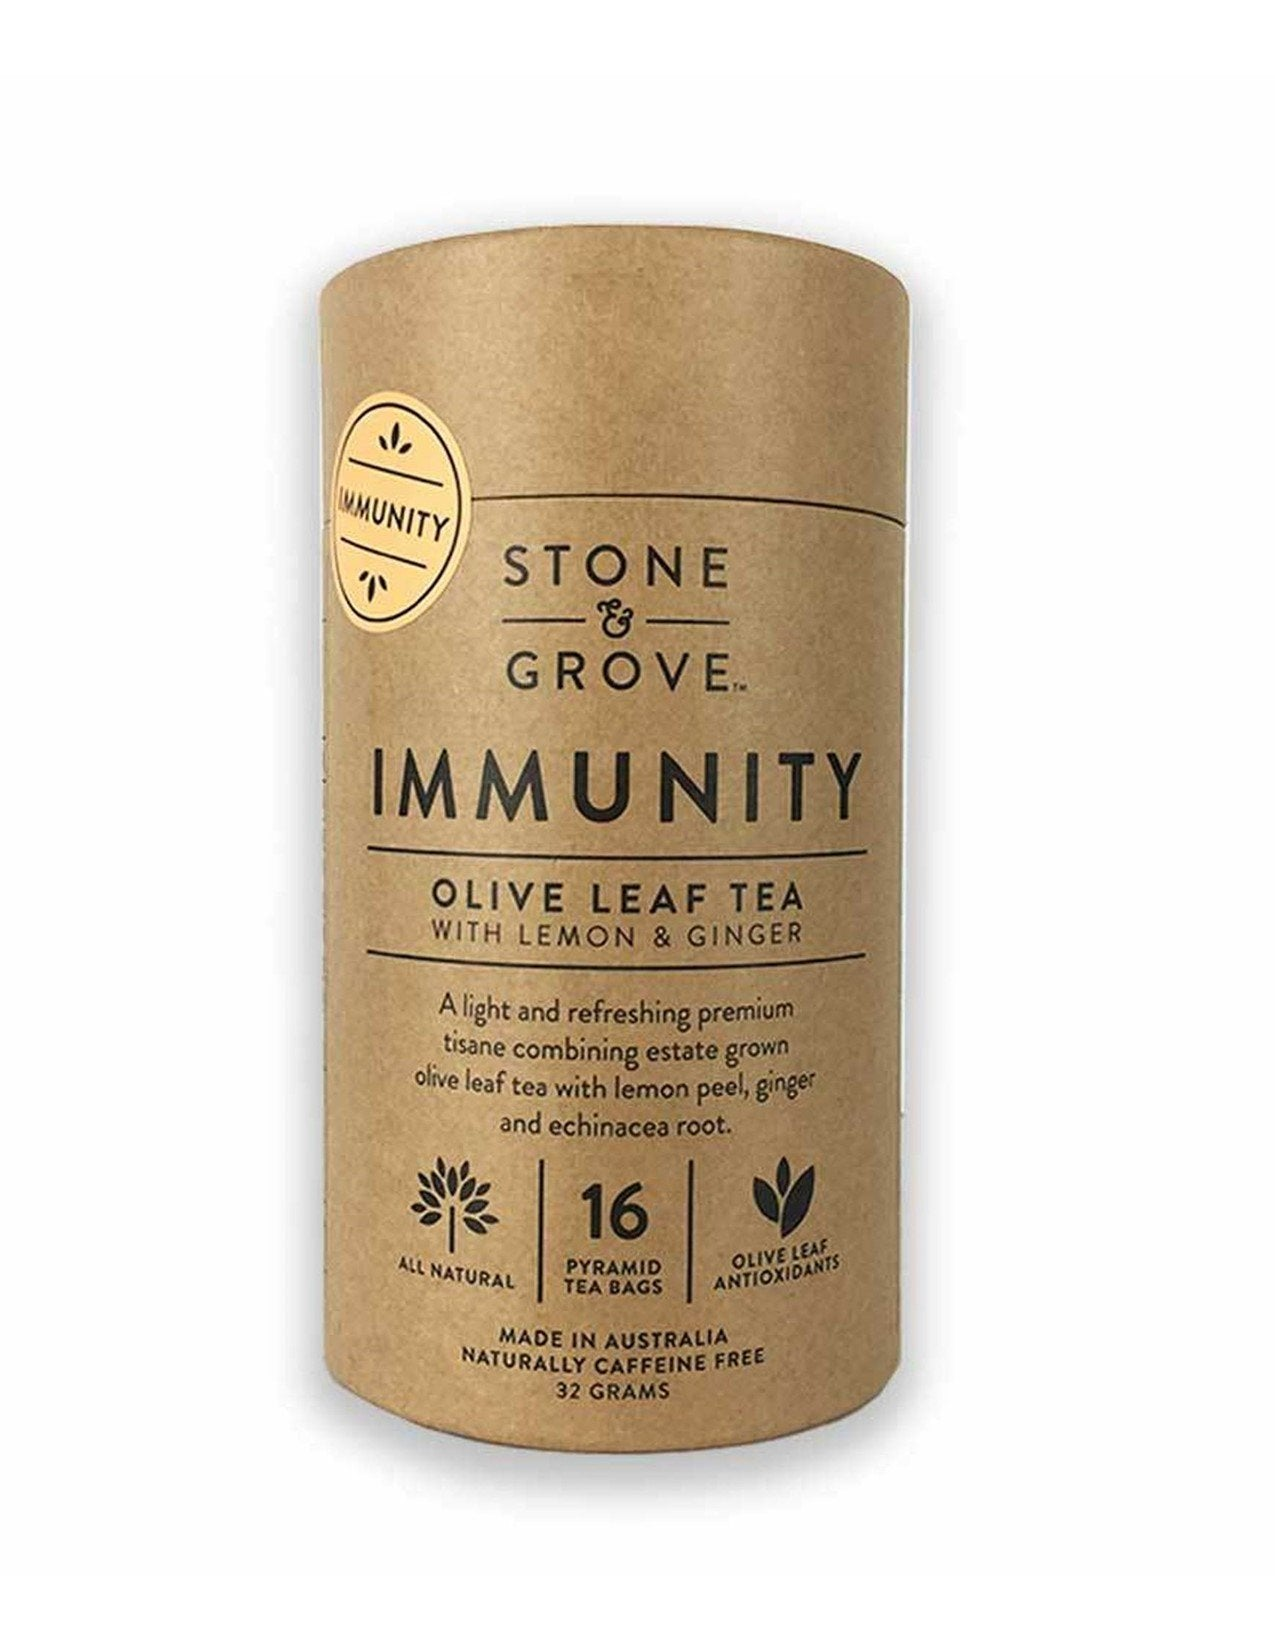 Stone and Grove Immunity Olive Leaf Tea